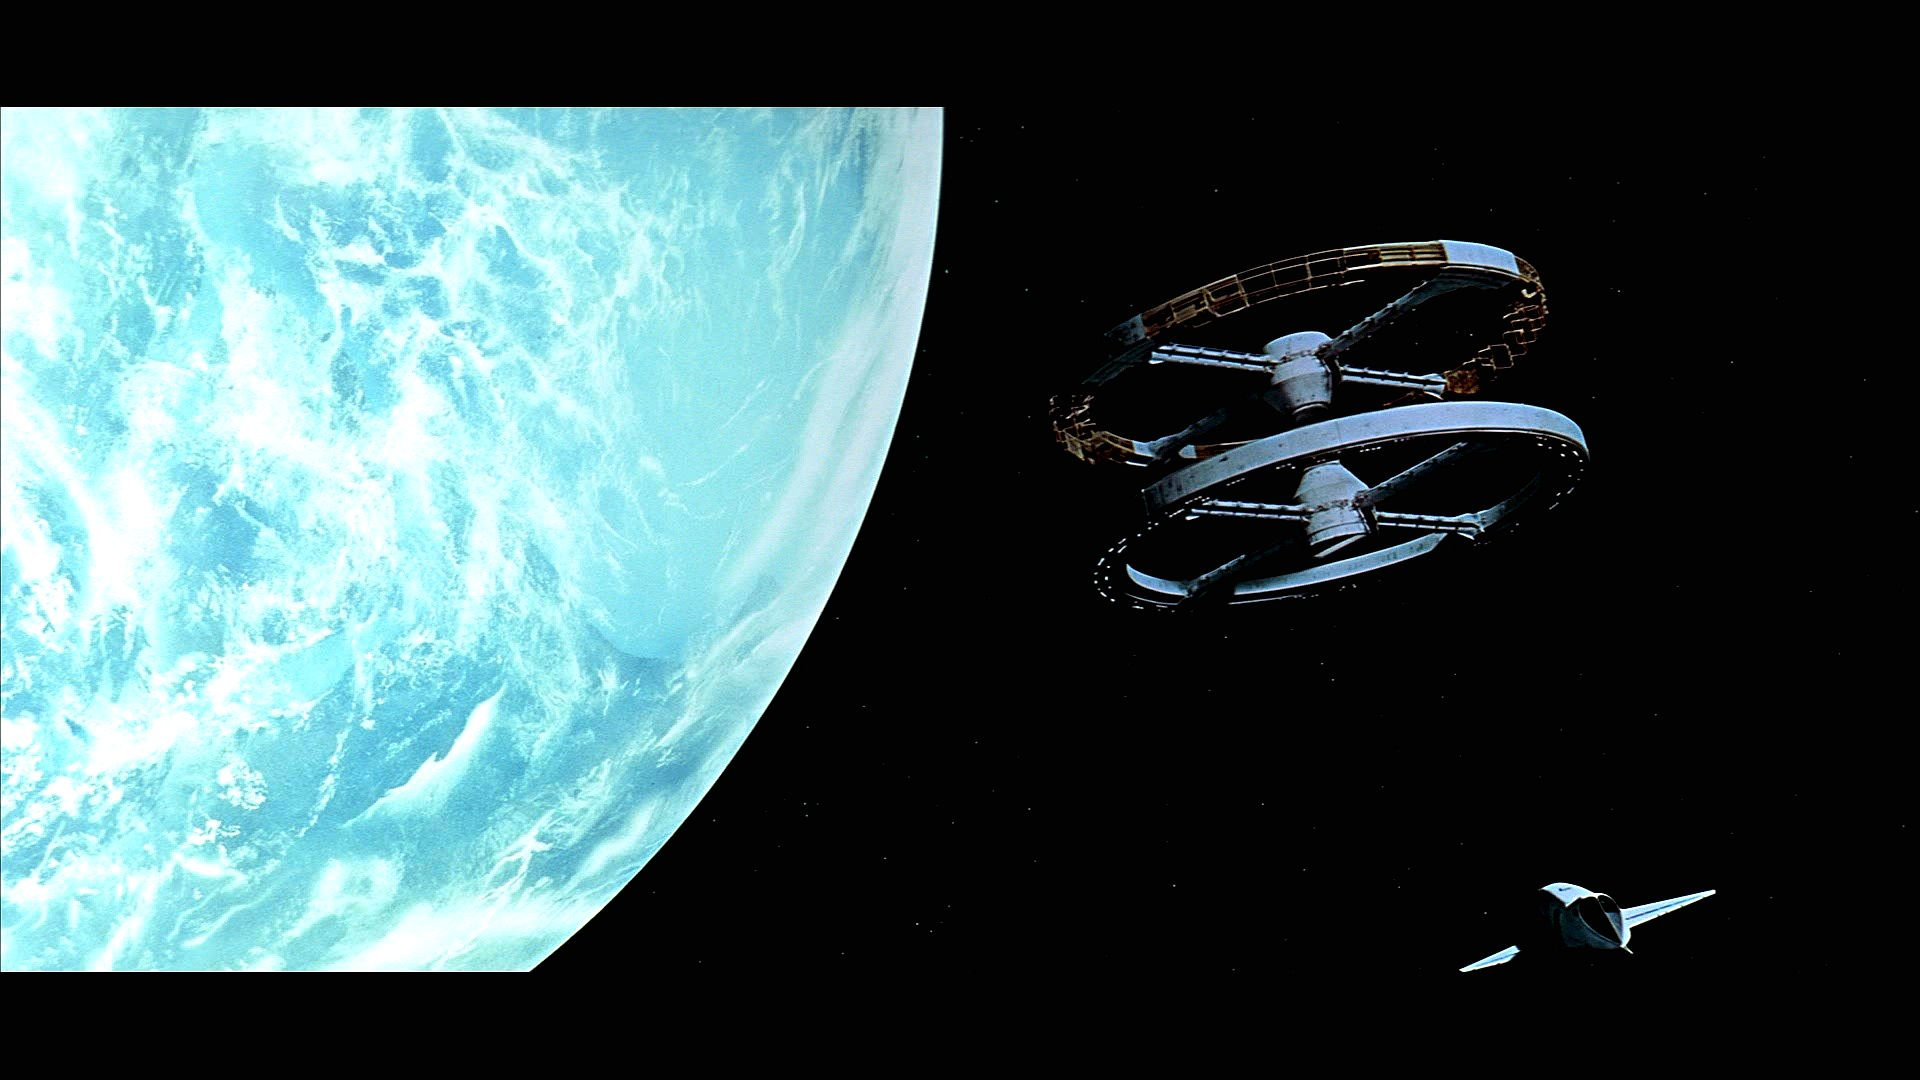 2001 space odyssey sci fi mystery futuristic spaceship - Space odyssey wallpaper ...